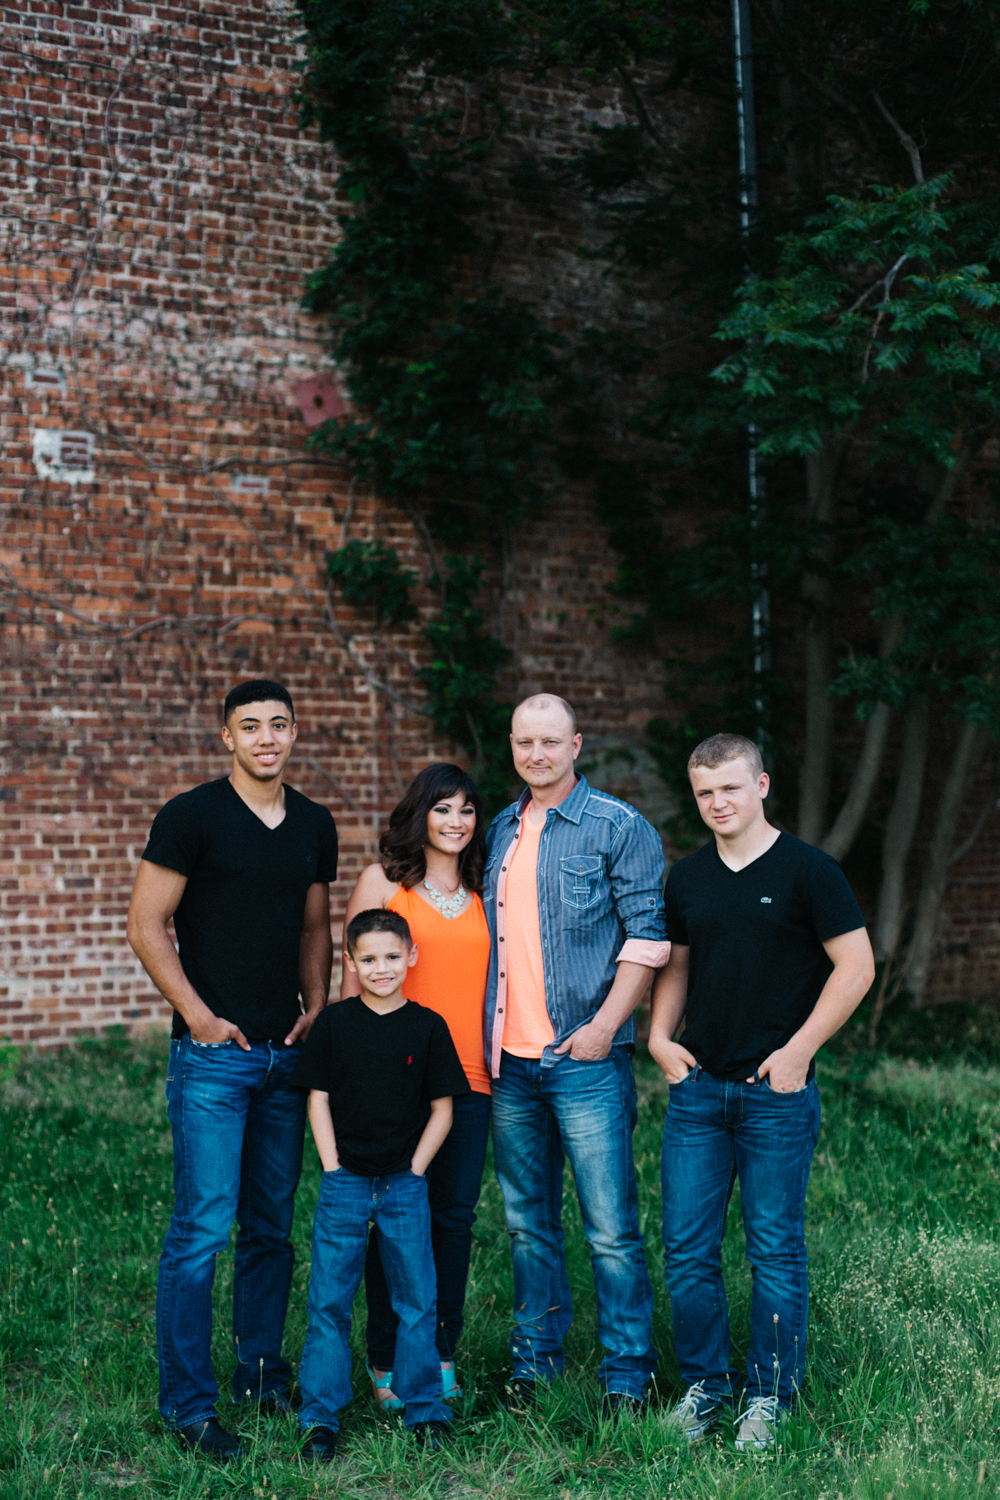 Family Photographer-Neal Dieker-Wichita, Kansas-100.jpg